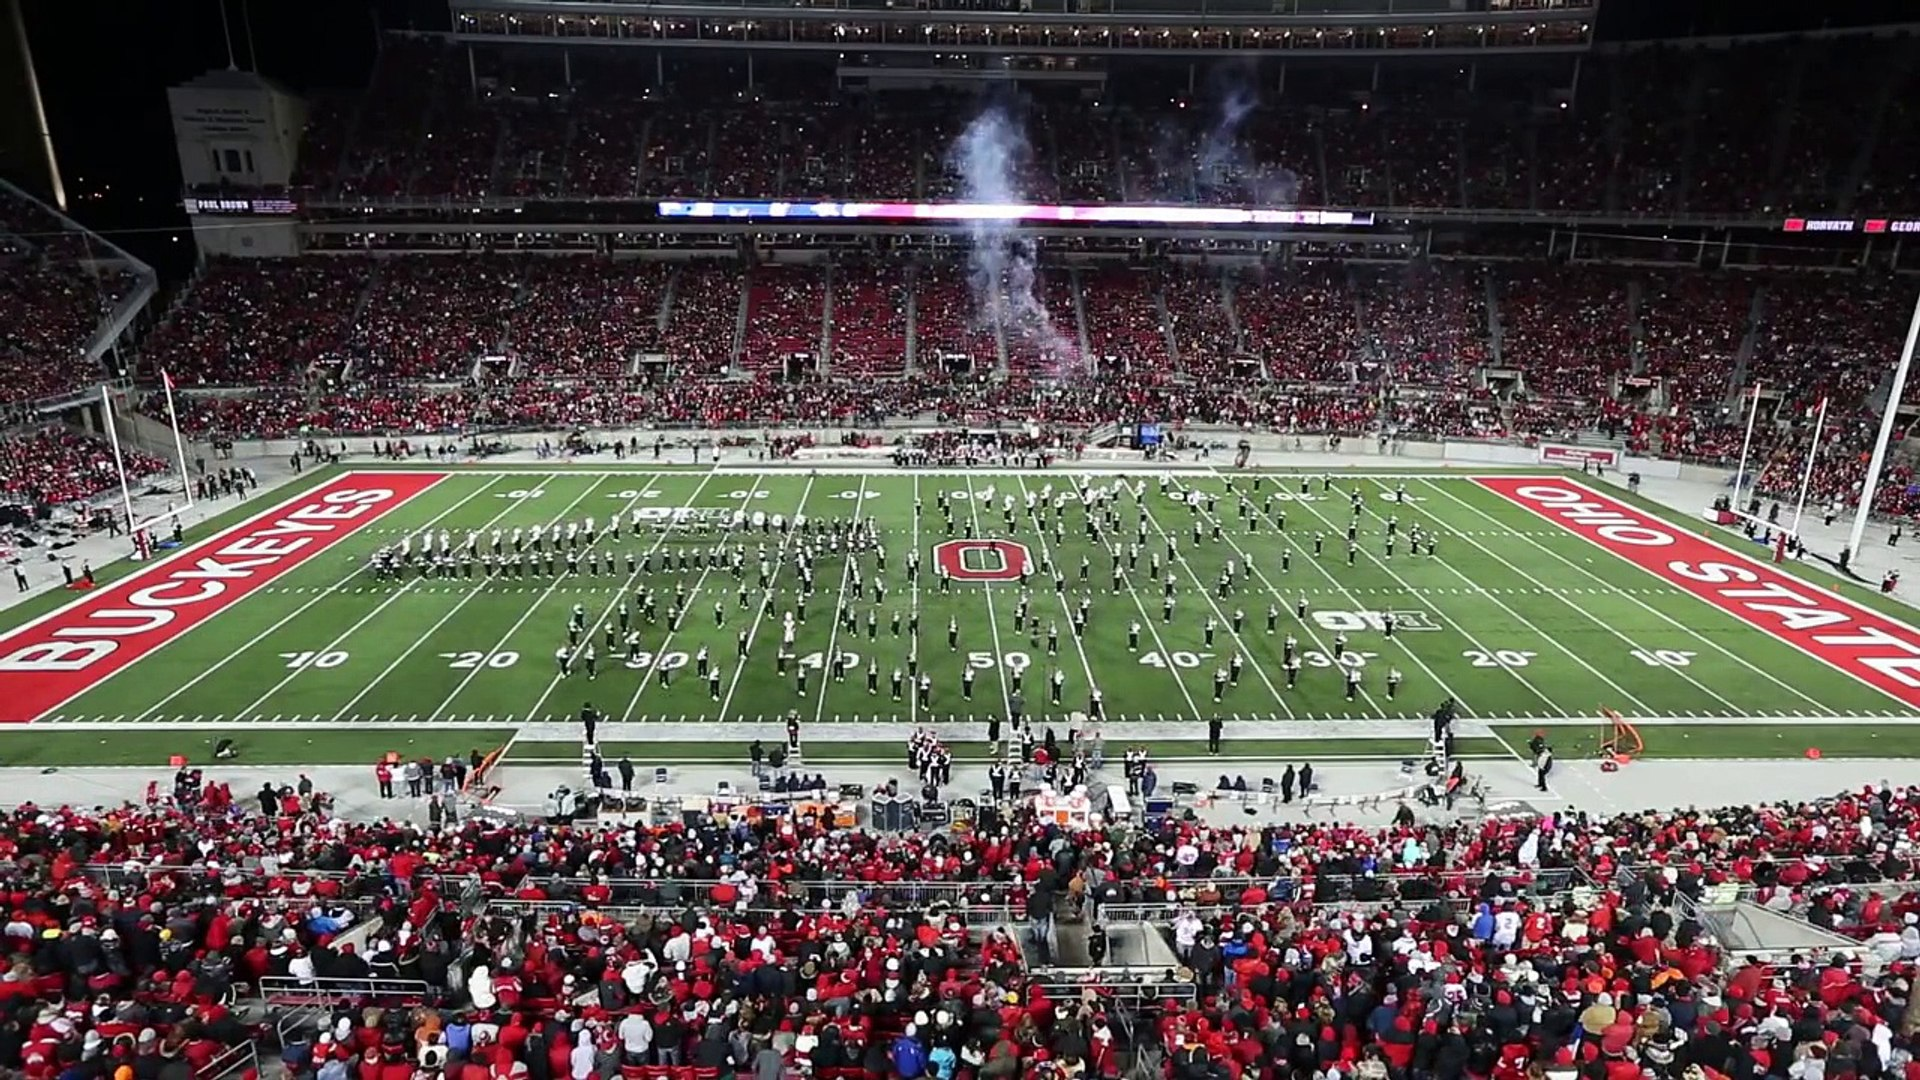 The Ohio State Marching Band Nov. 1 halftime show: They Came from Outer Space